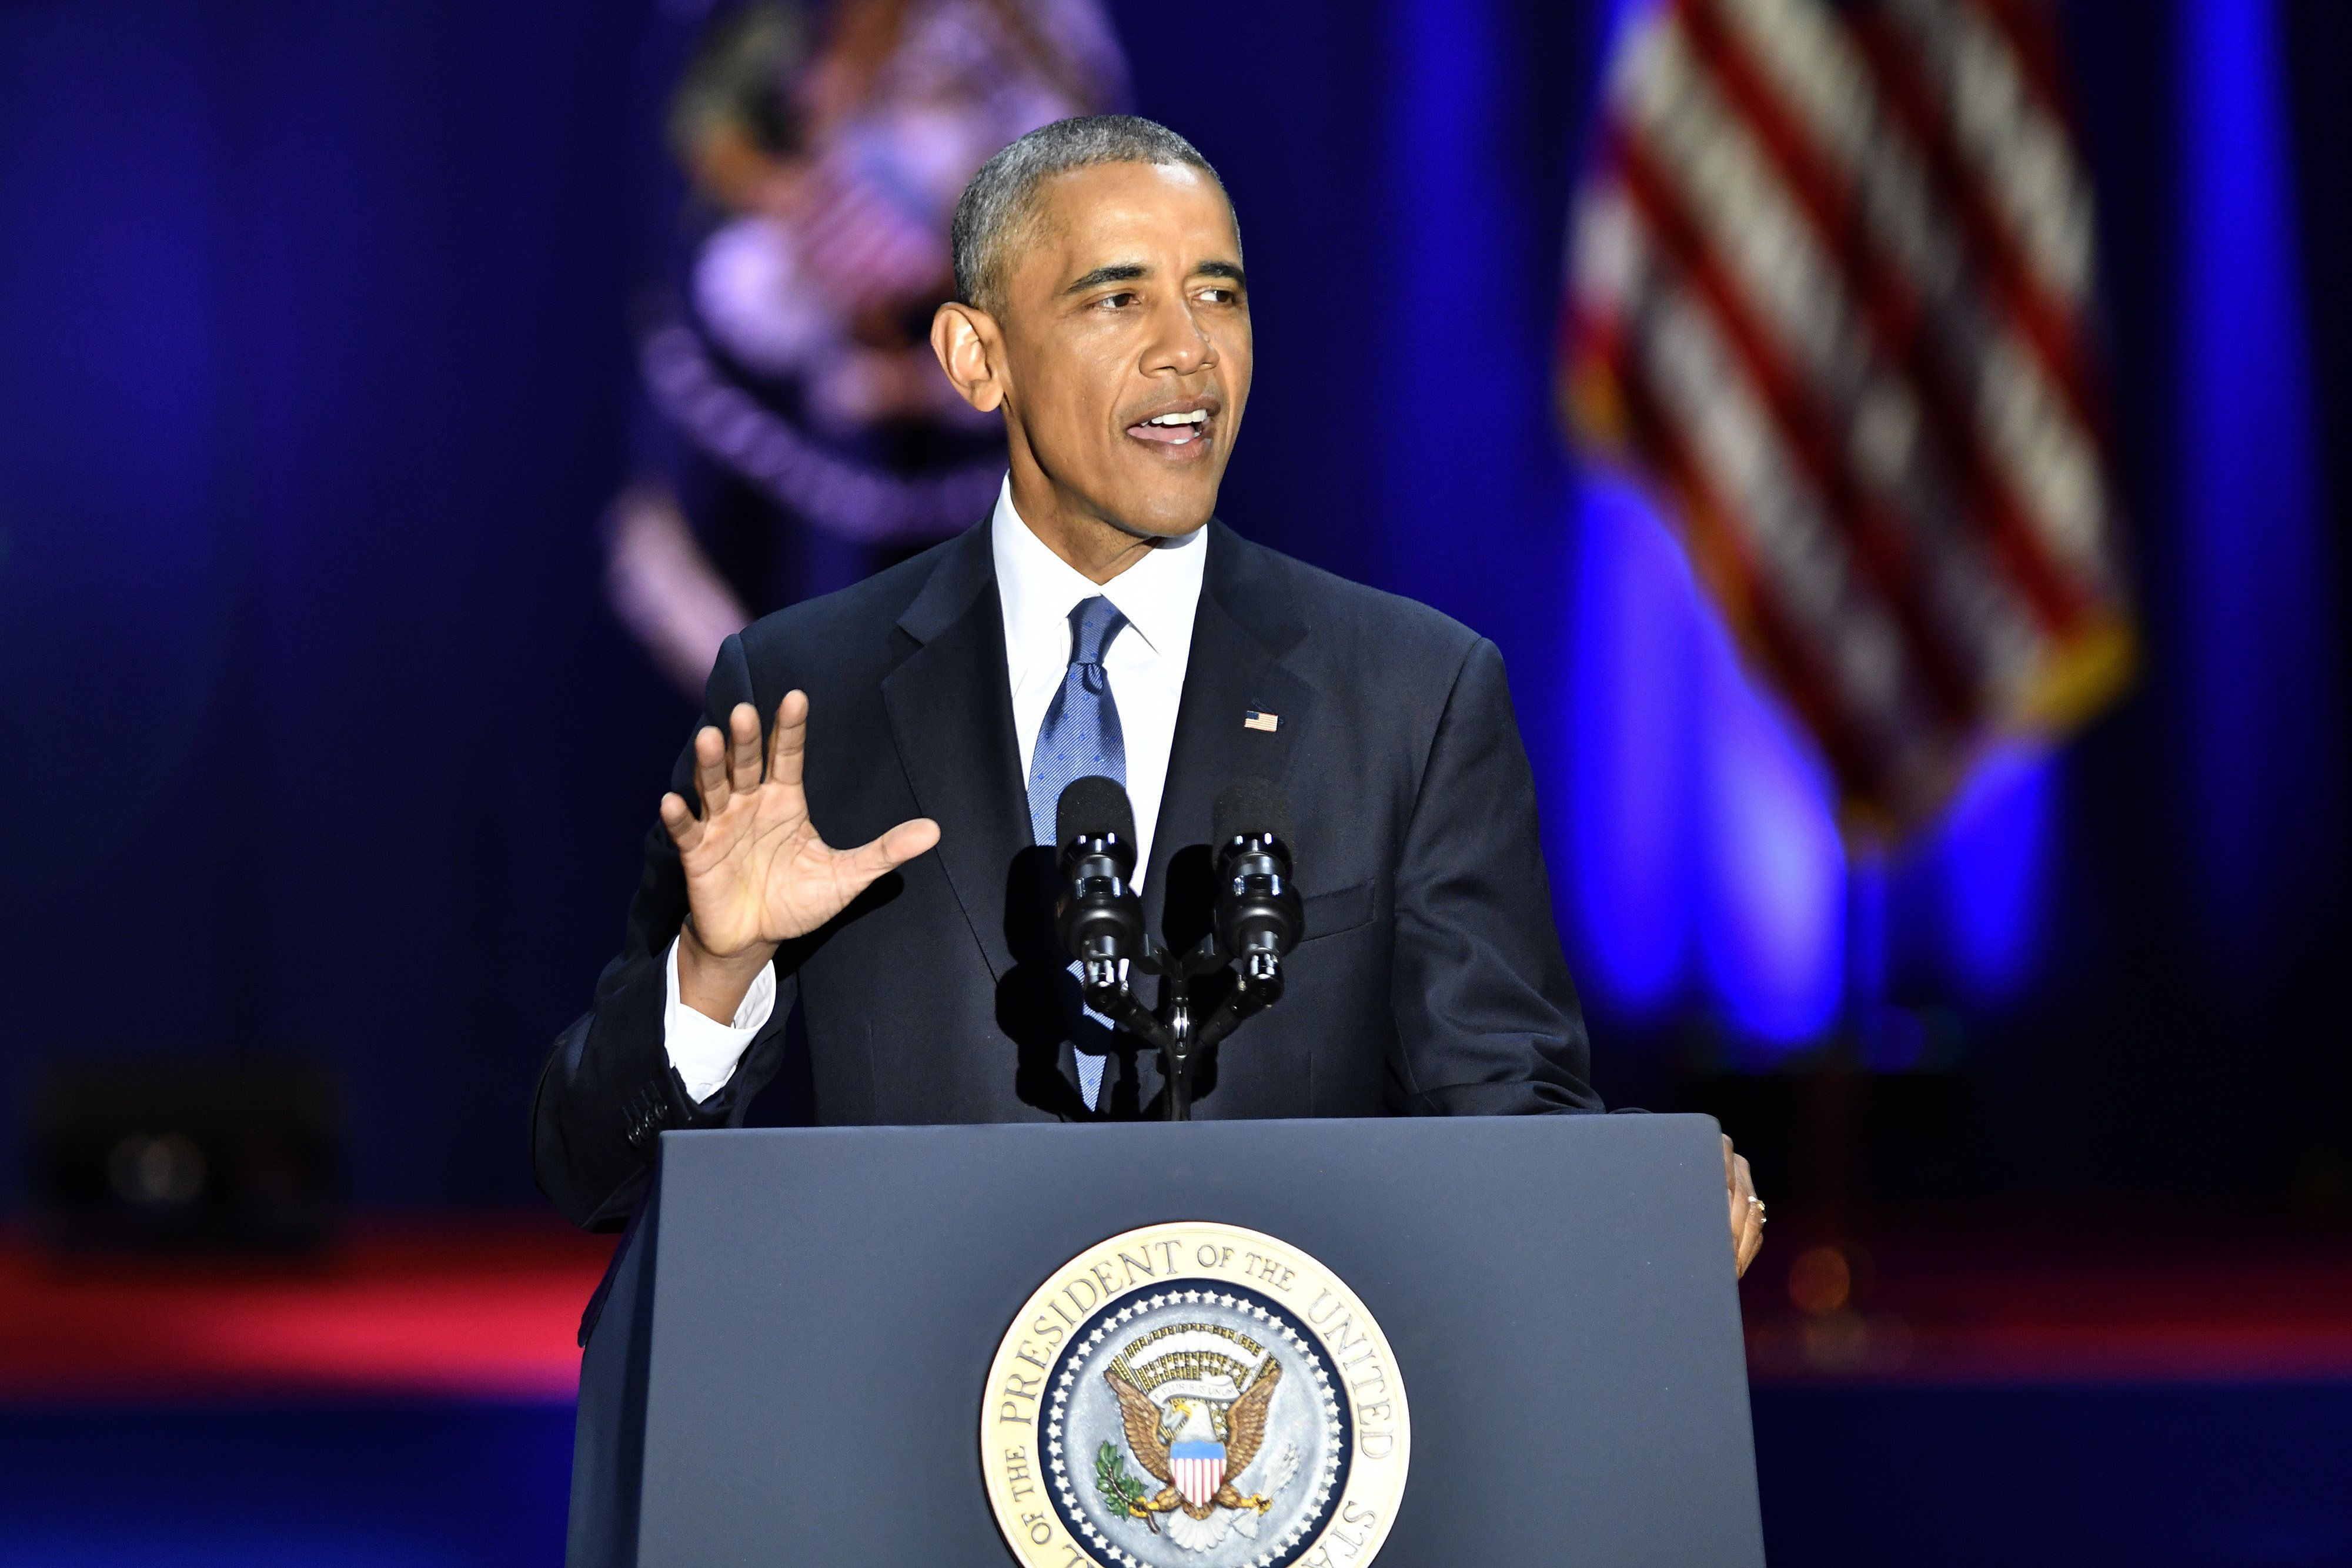 President Barack Obama announcedchanges to U.S. policy toward Cuban migrants Thursday.